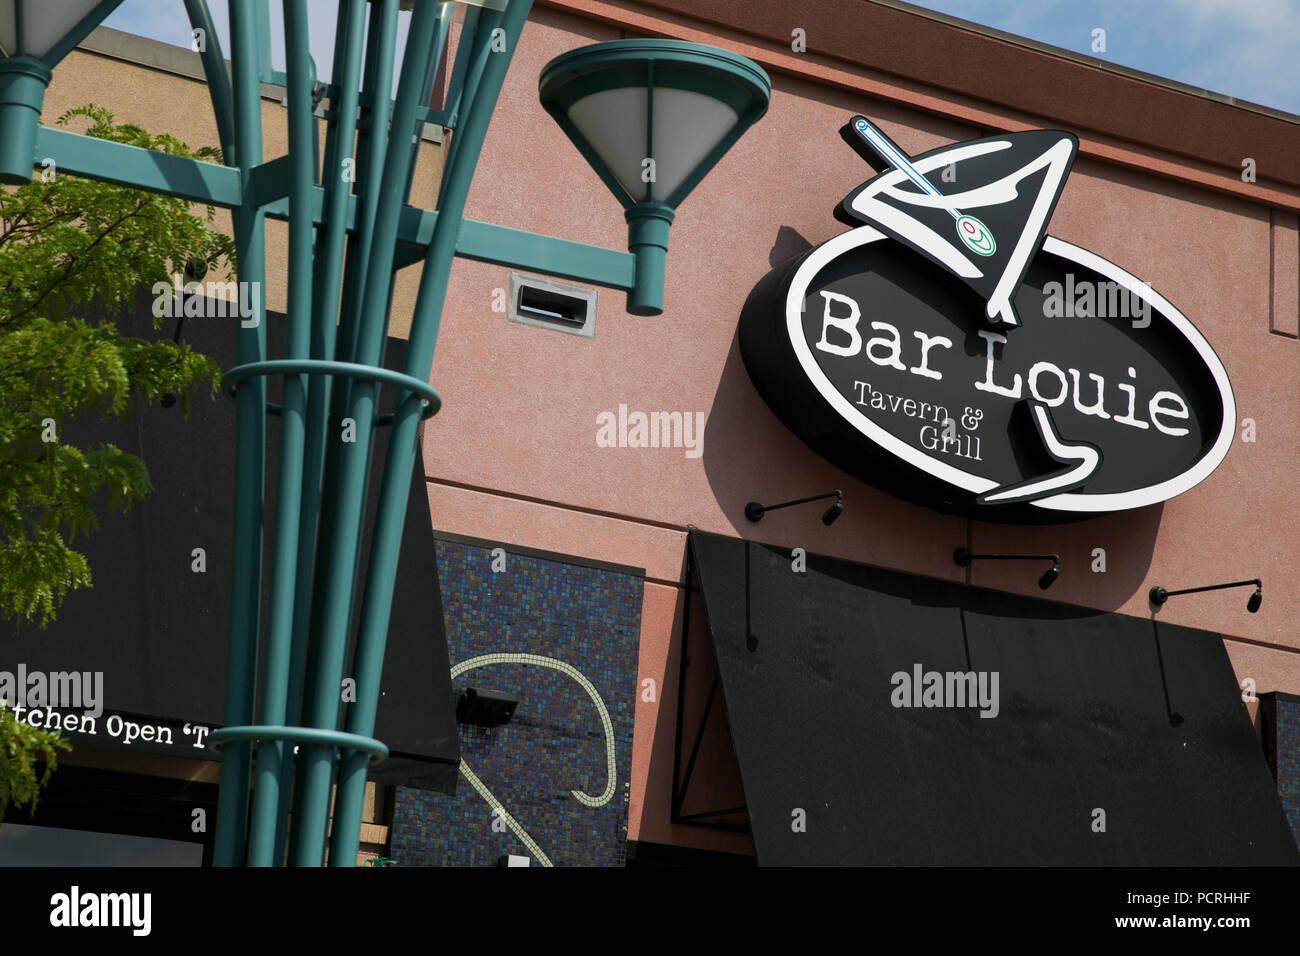 A logo sign outside of a Bar Louie restaurant location in Westminster, Colorado, on July 23, 2018. - Stock Image